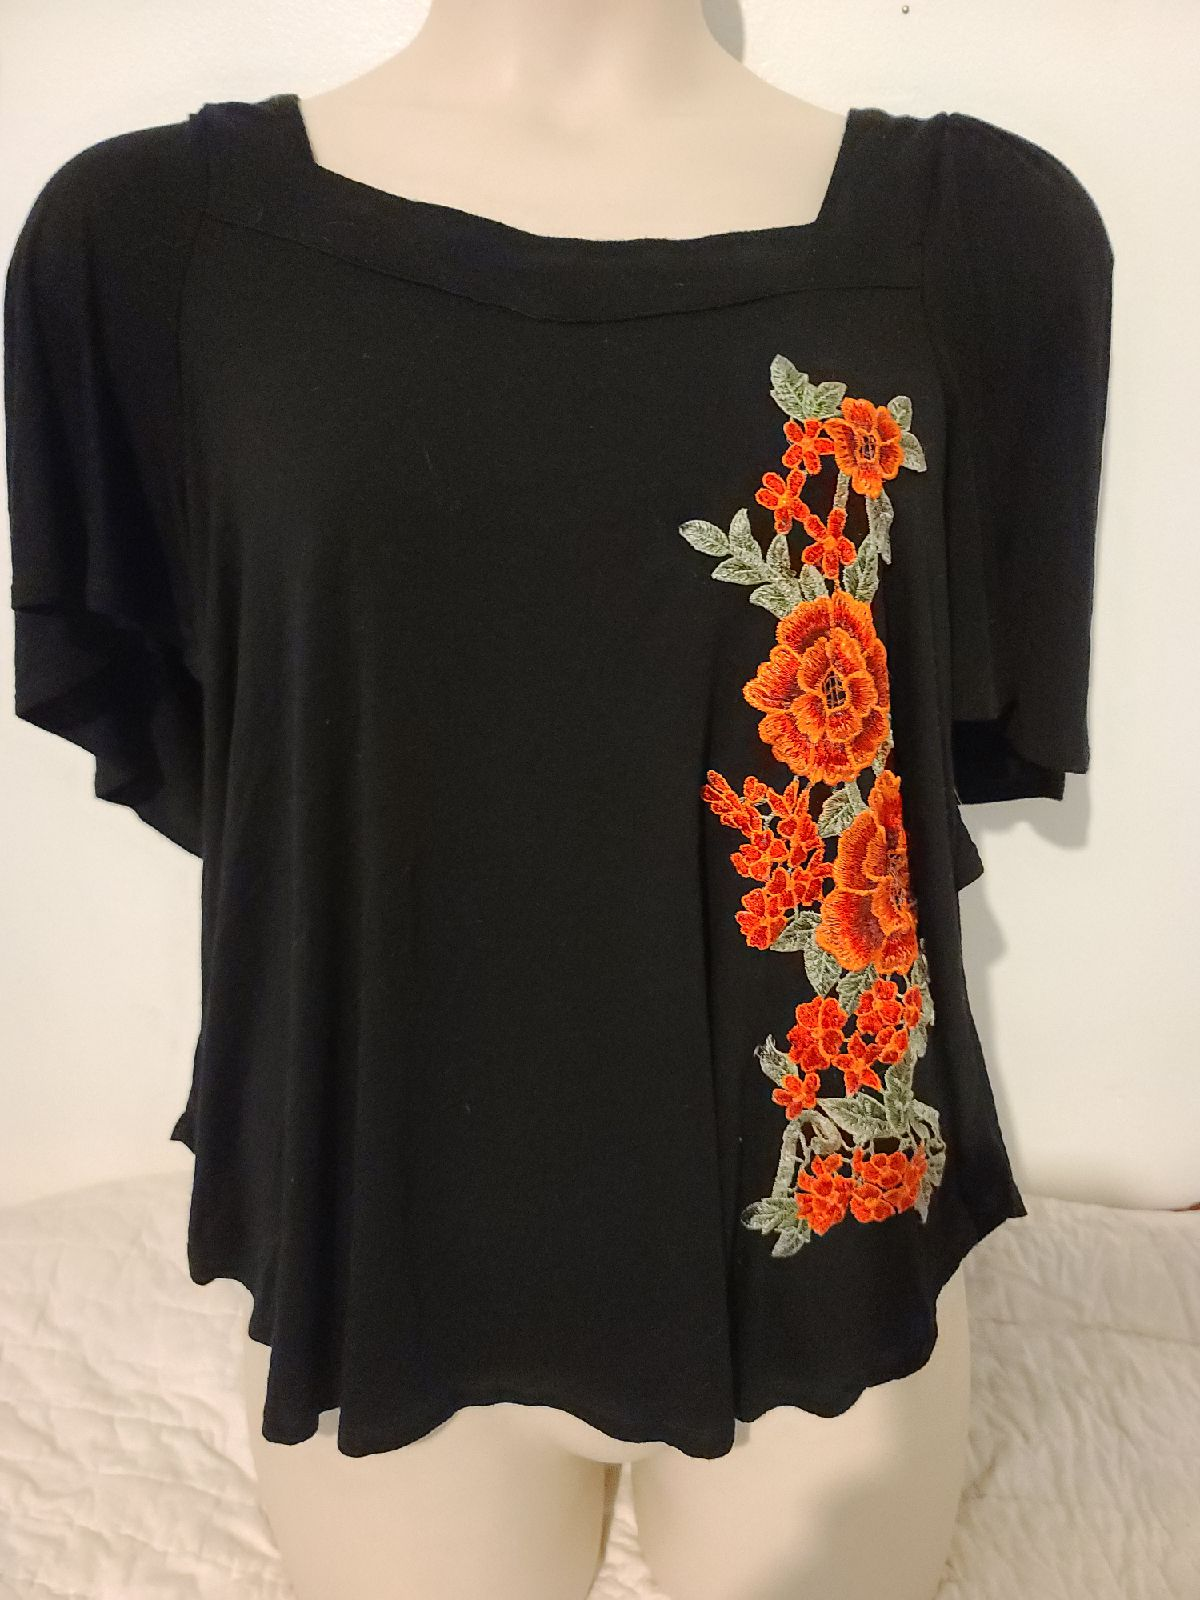 Woman's embroidered blackTop Large